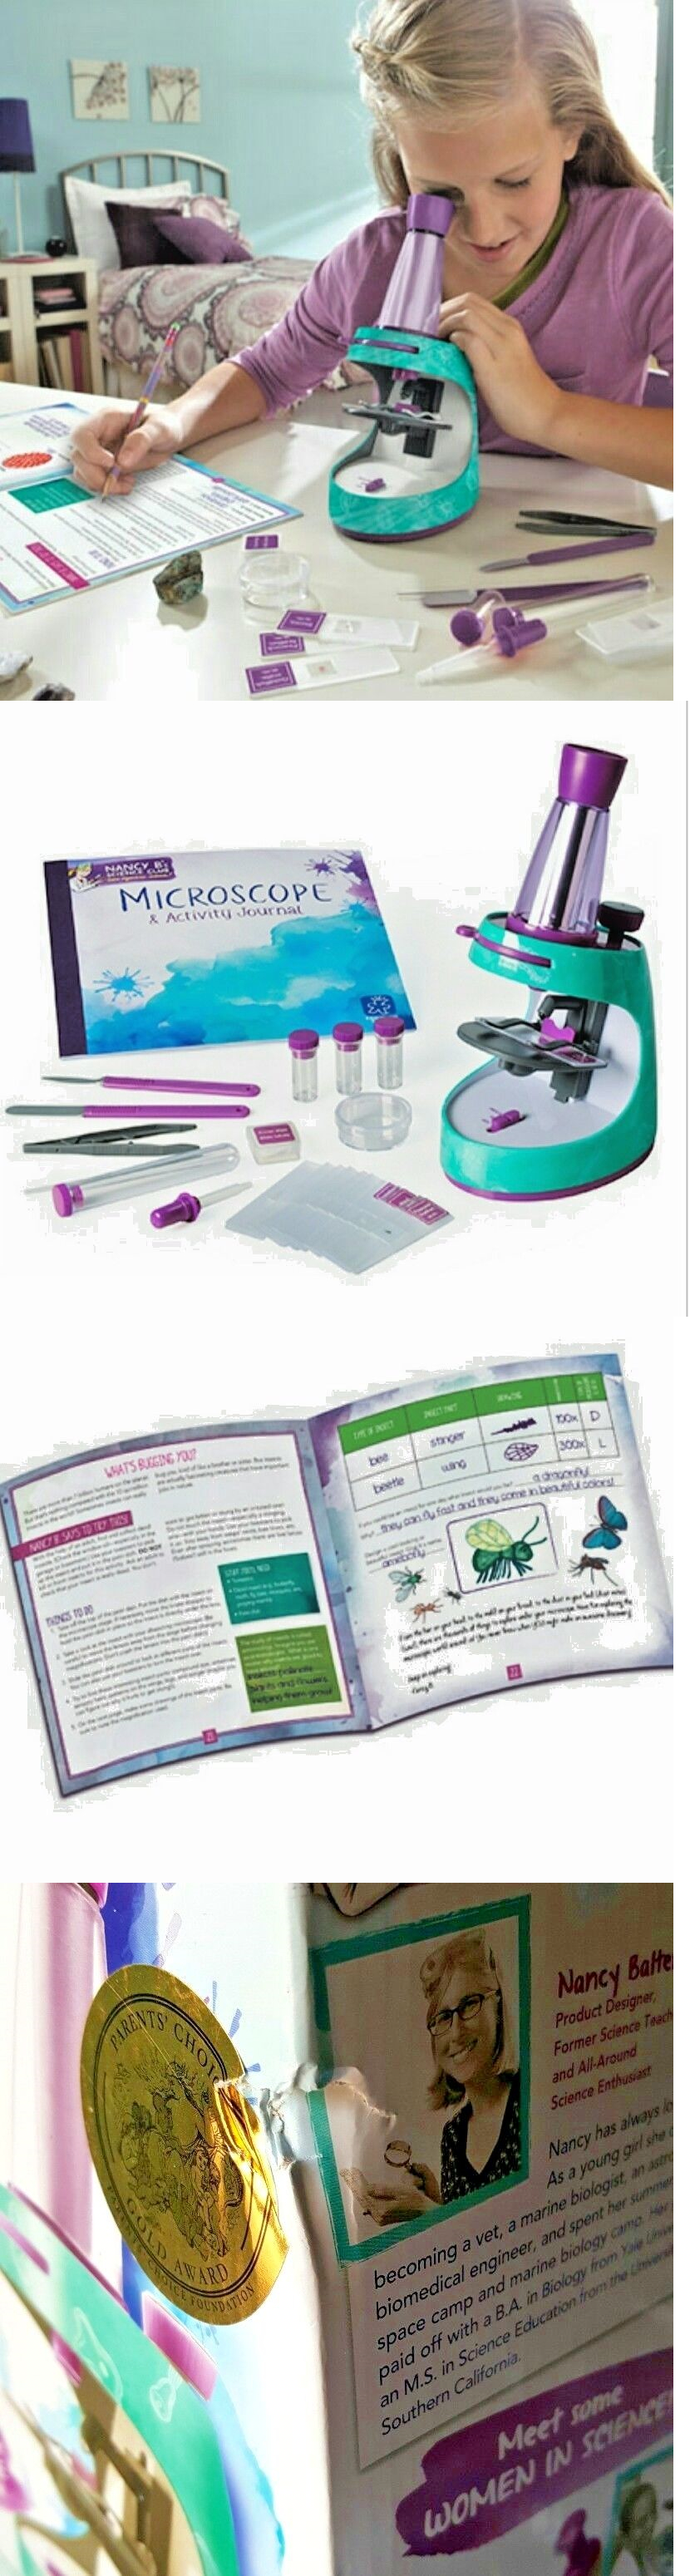 Microscopes and Chemistry 2568 Educational Toys For 8 Year Olds